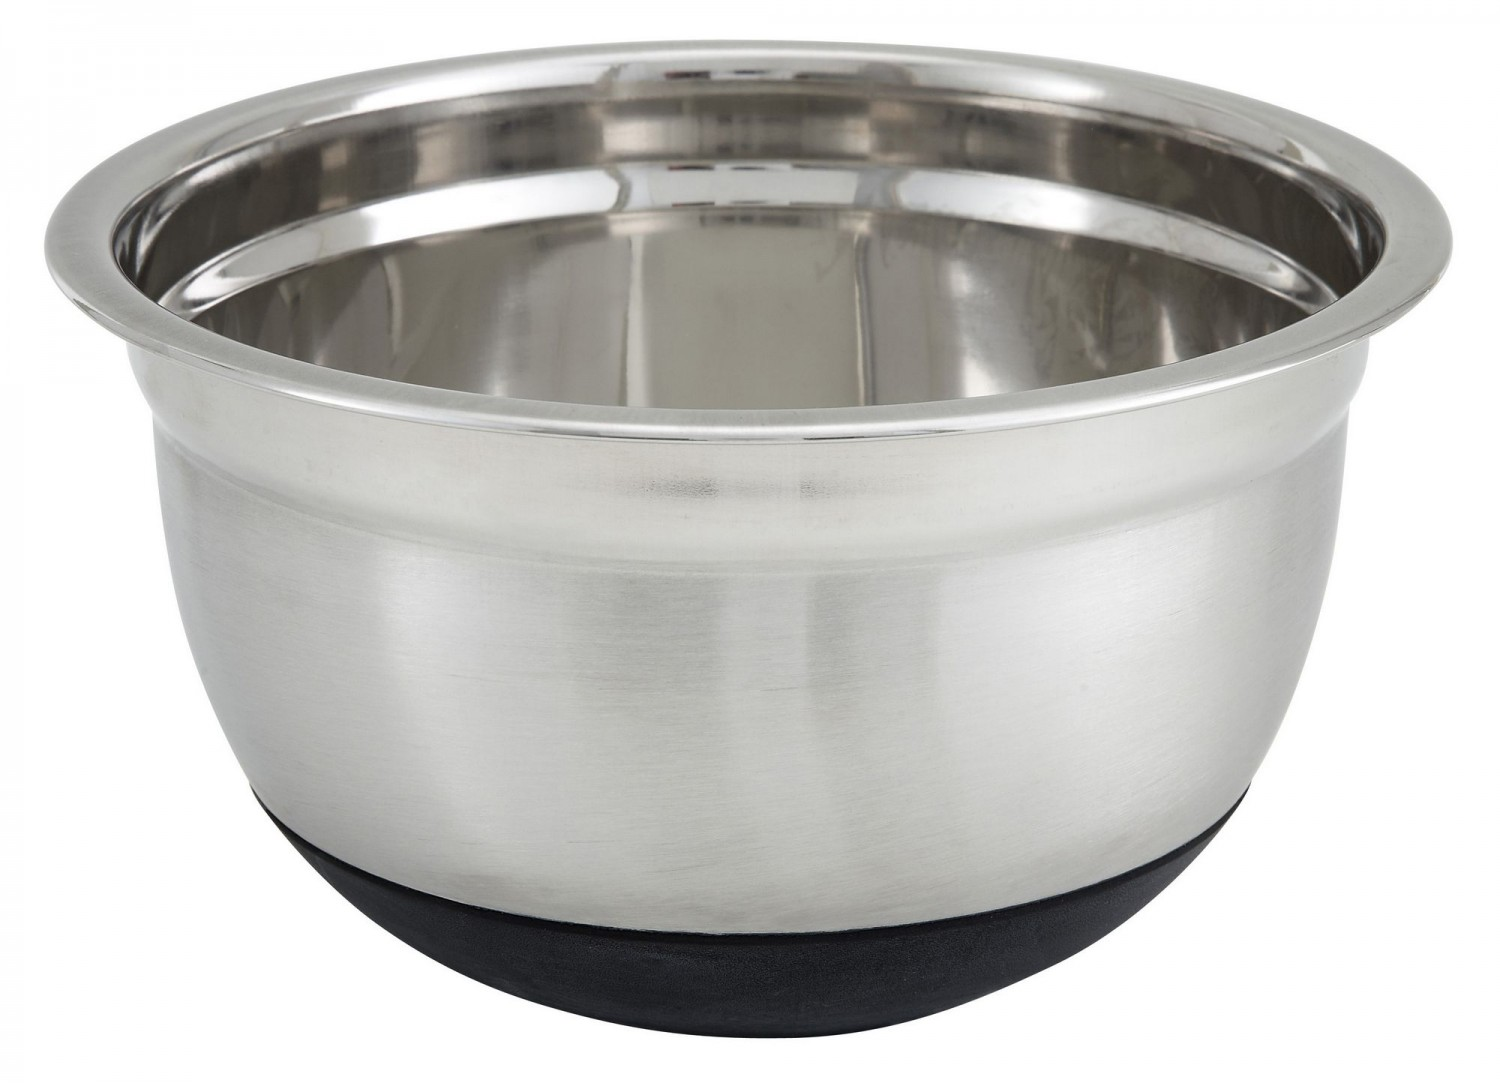 Winco MXRU-150 German Mixing Bowl 1-1/2 Qt.